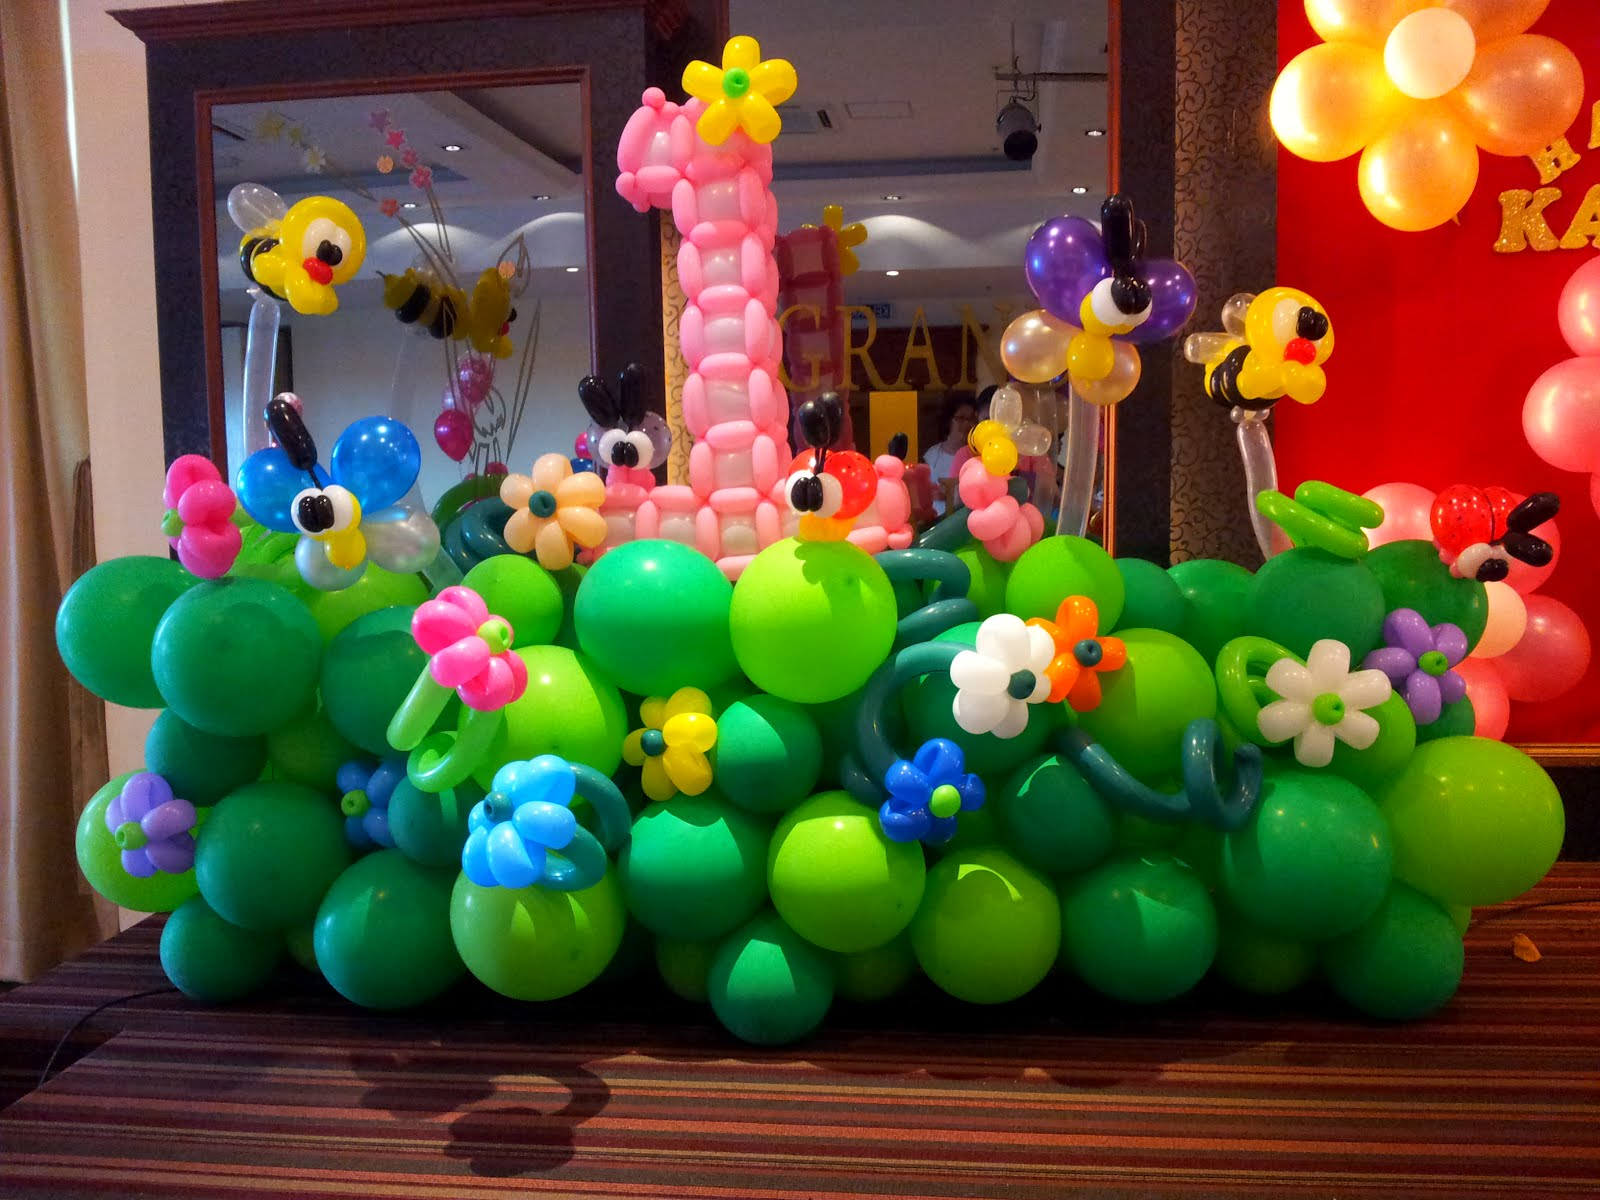 Balloon decoration for birthday party party favors ideas for Balloon decoration designs